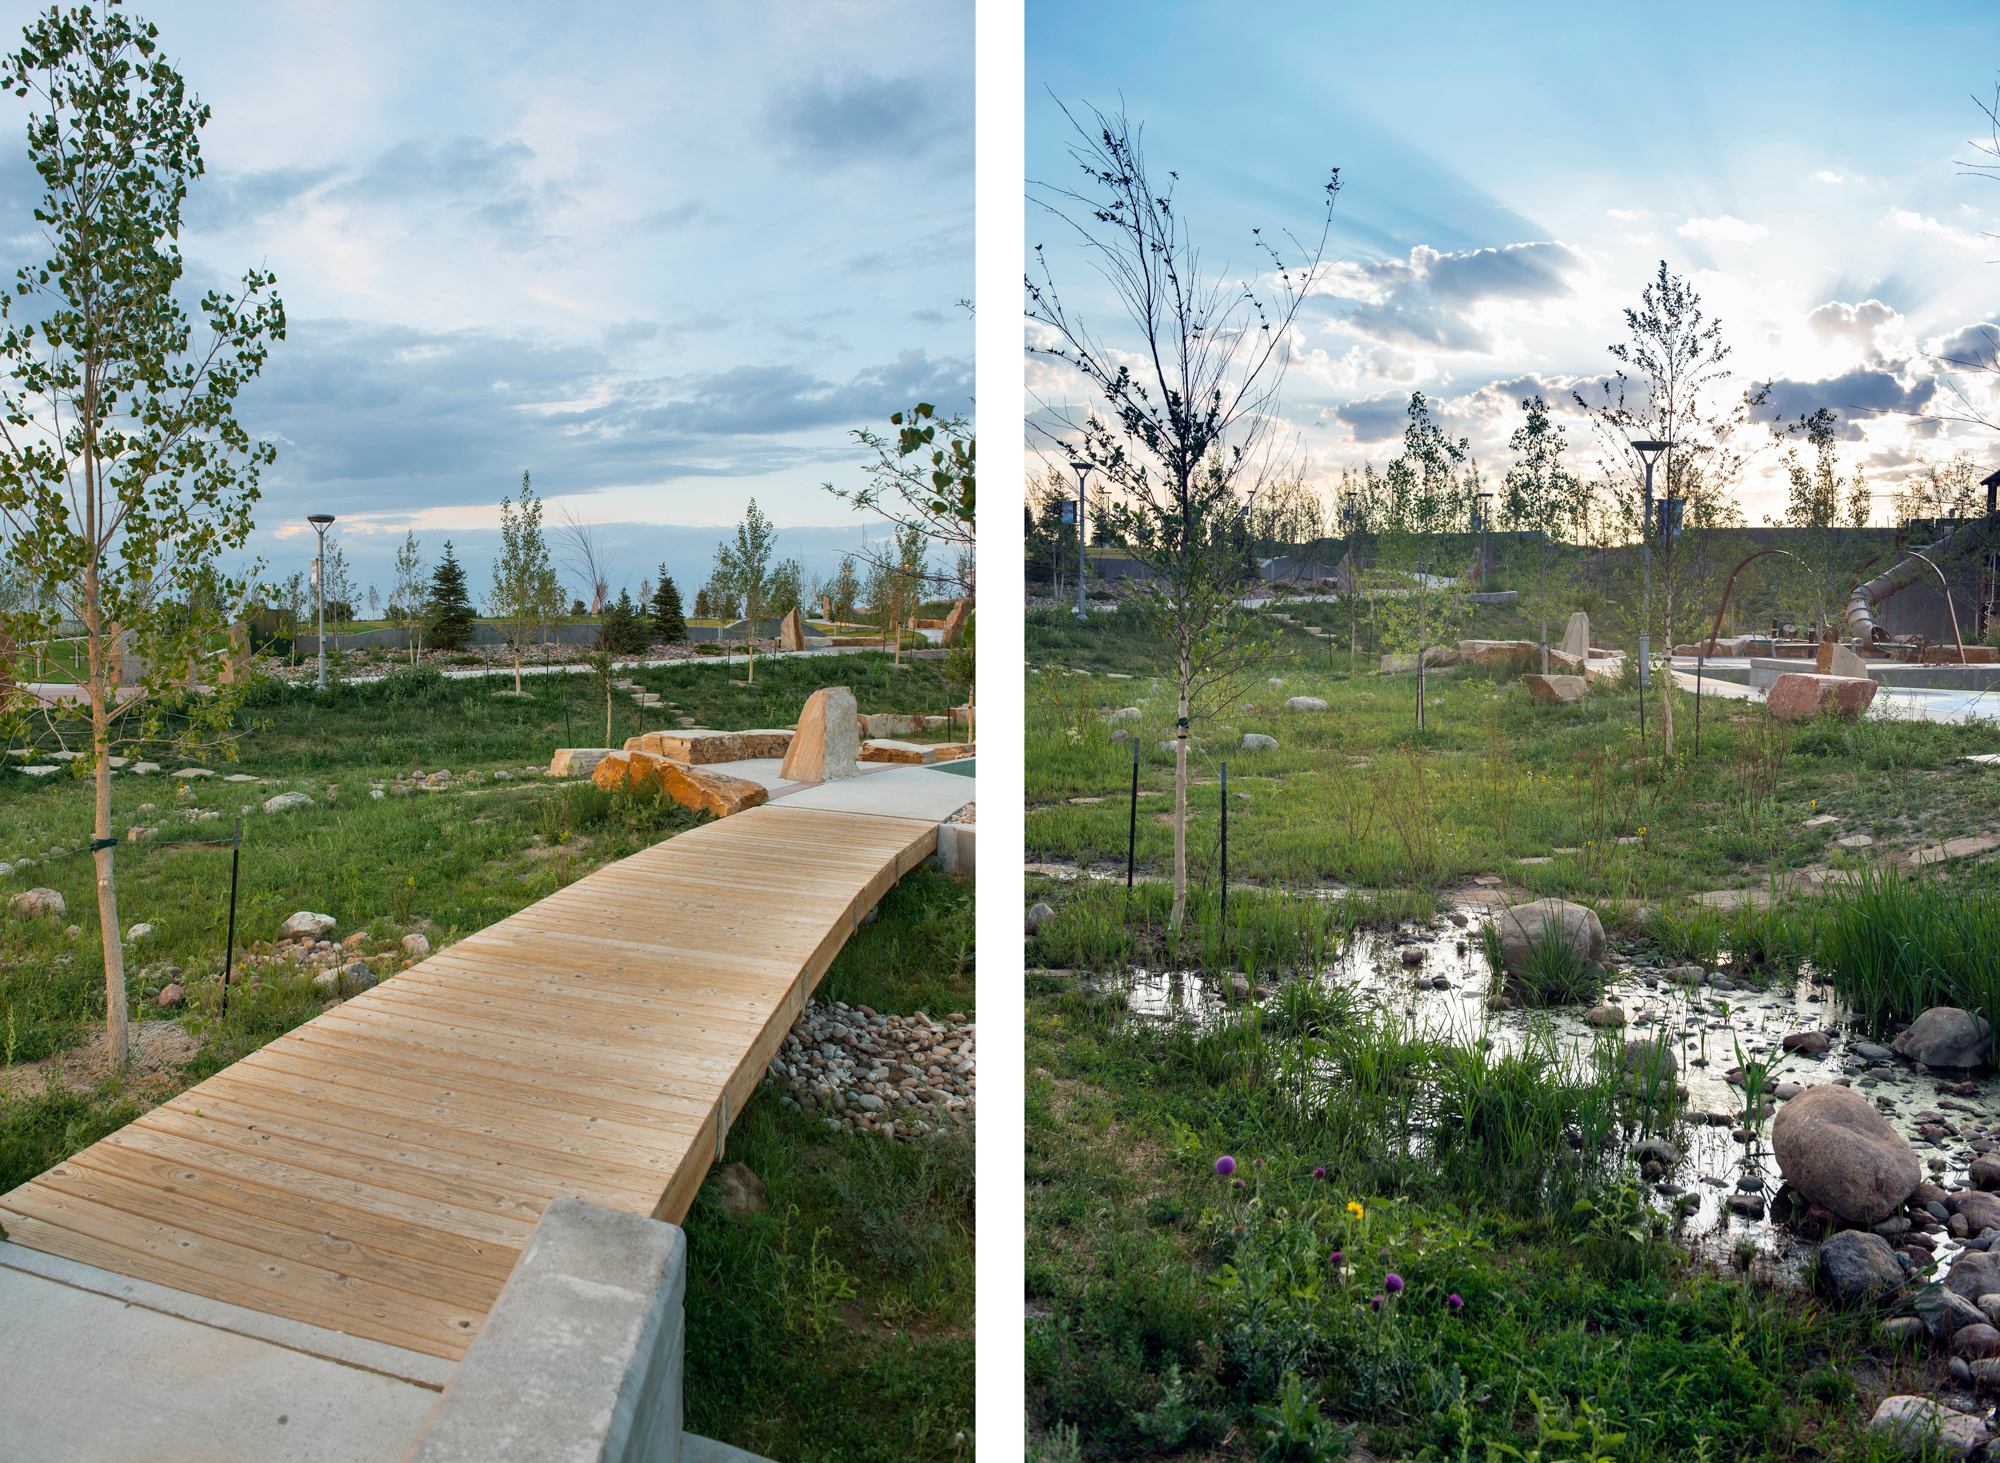 Drainage was designed at Centennial's Center Park to be celebrated as a educational and intrepretaive component of the playground and nature play experience.